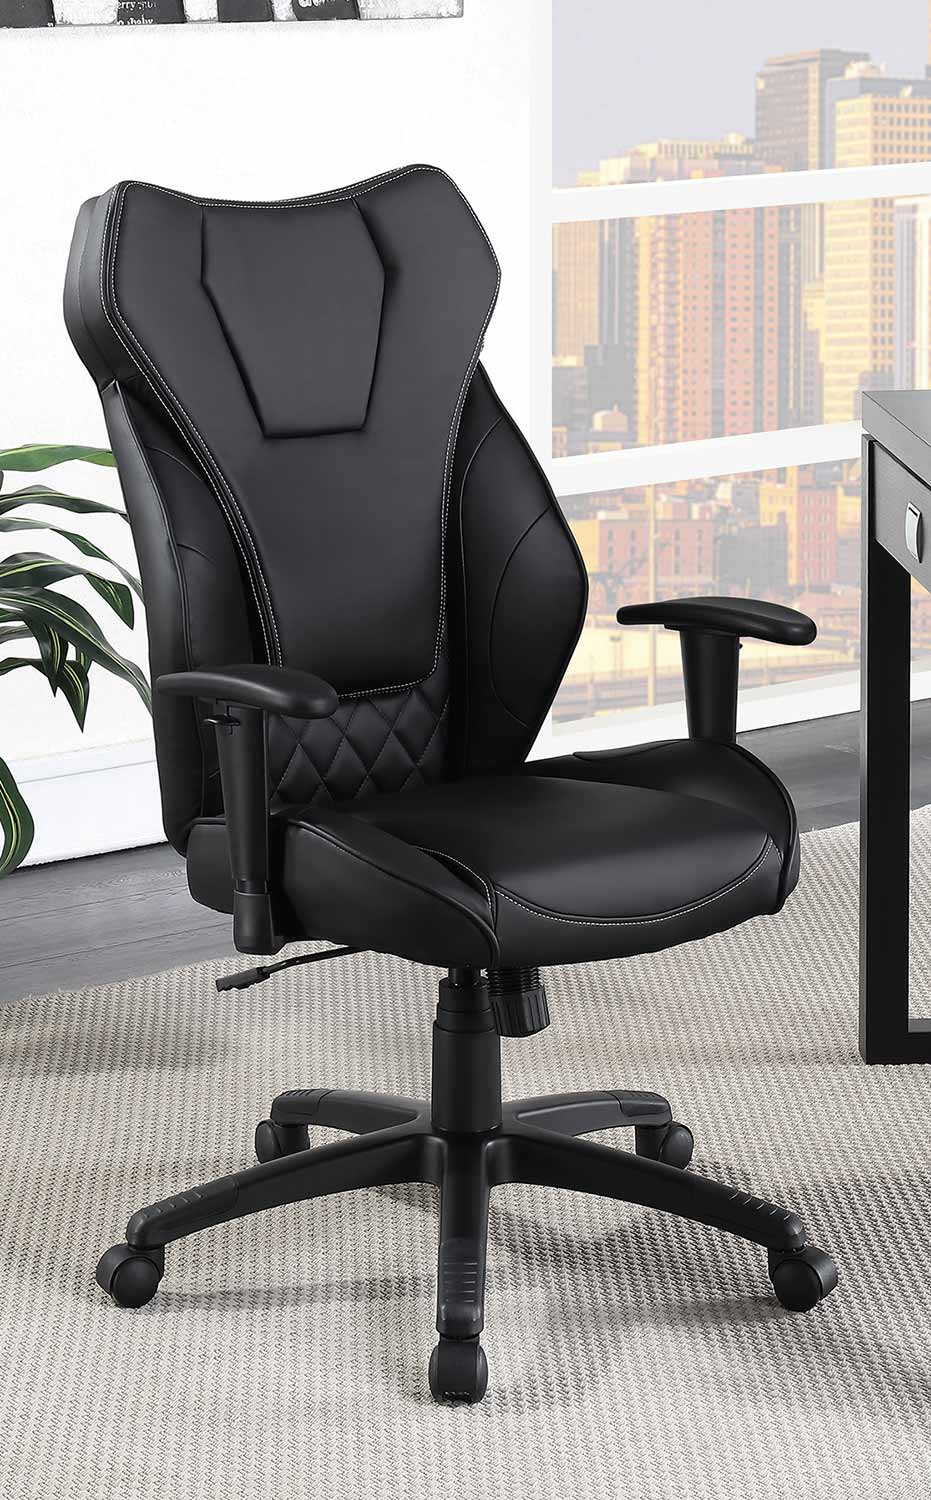 Coaster 802470 Office Chair - Black